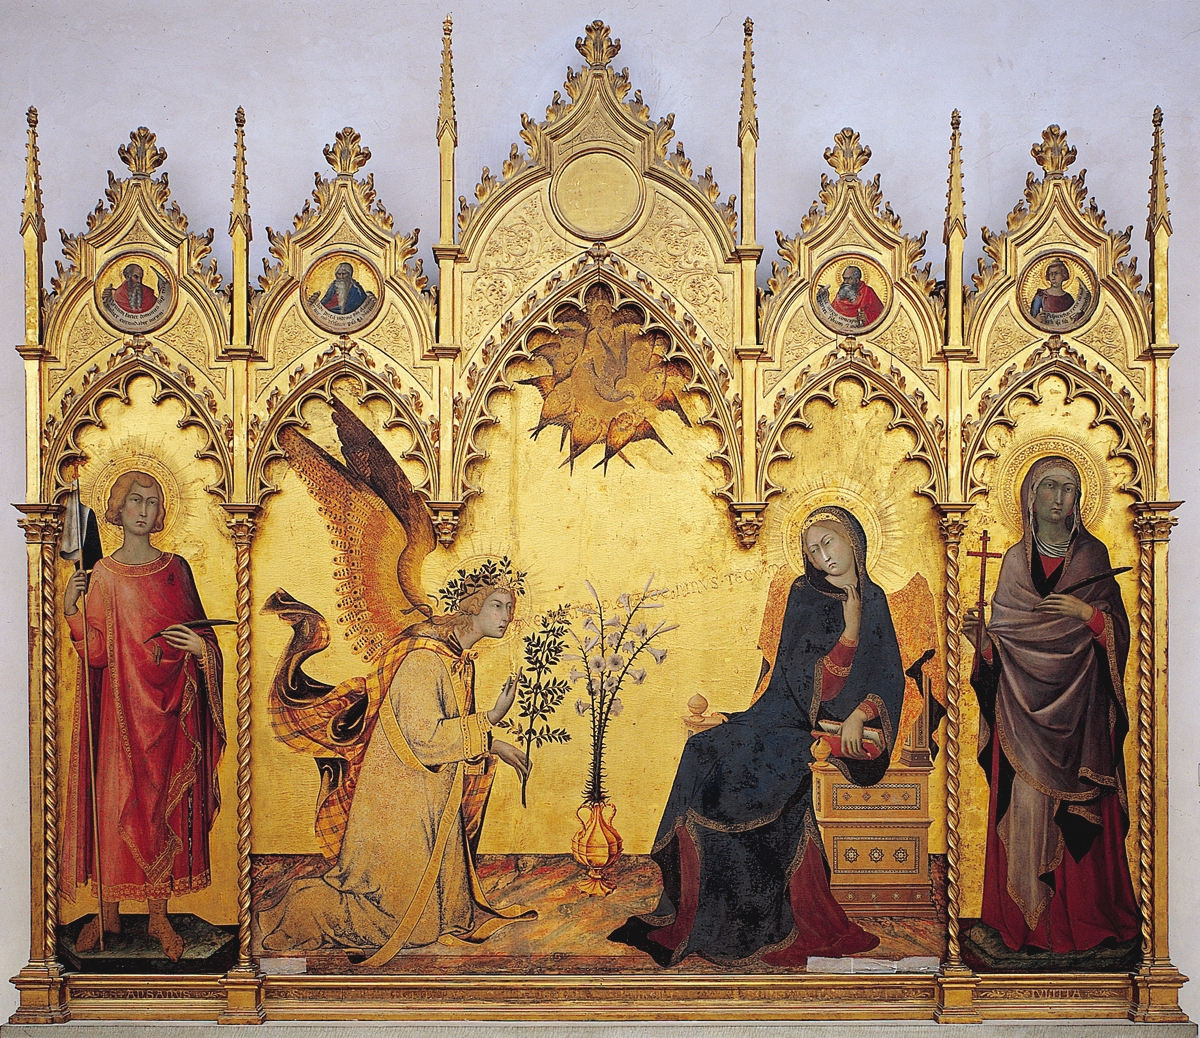 'The Annunciation with St. Margaret and St. Ansanus' Simone Martini and Lippo Memmi